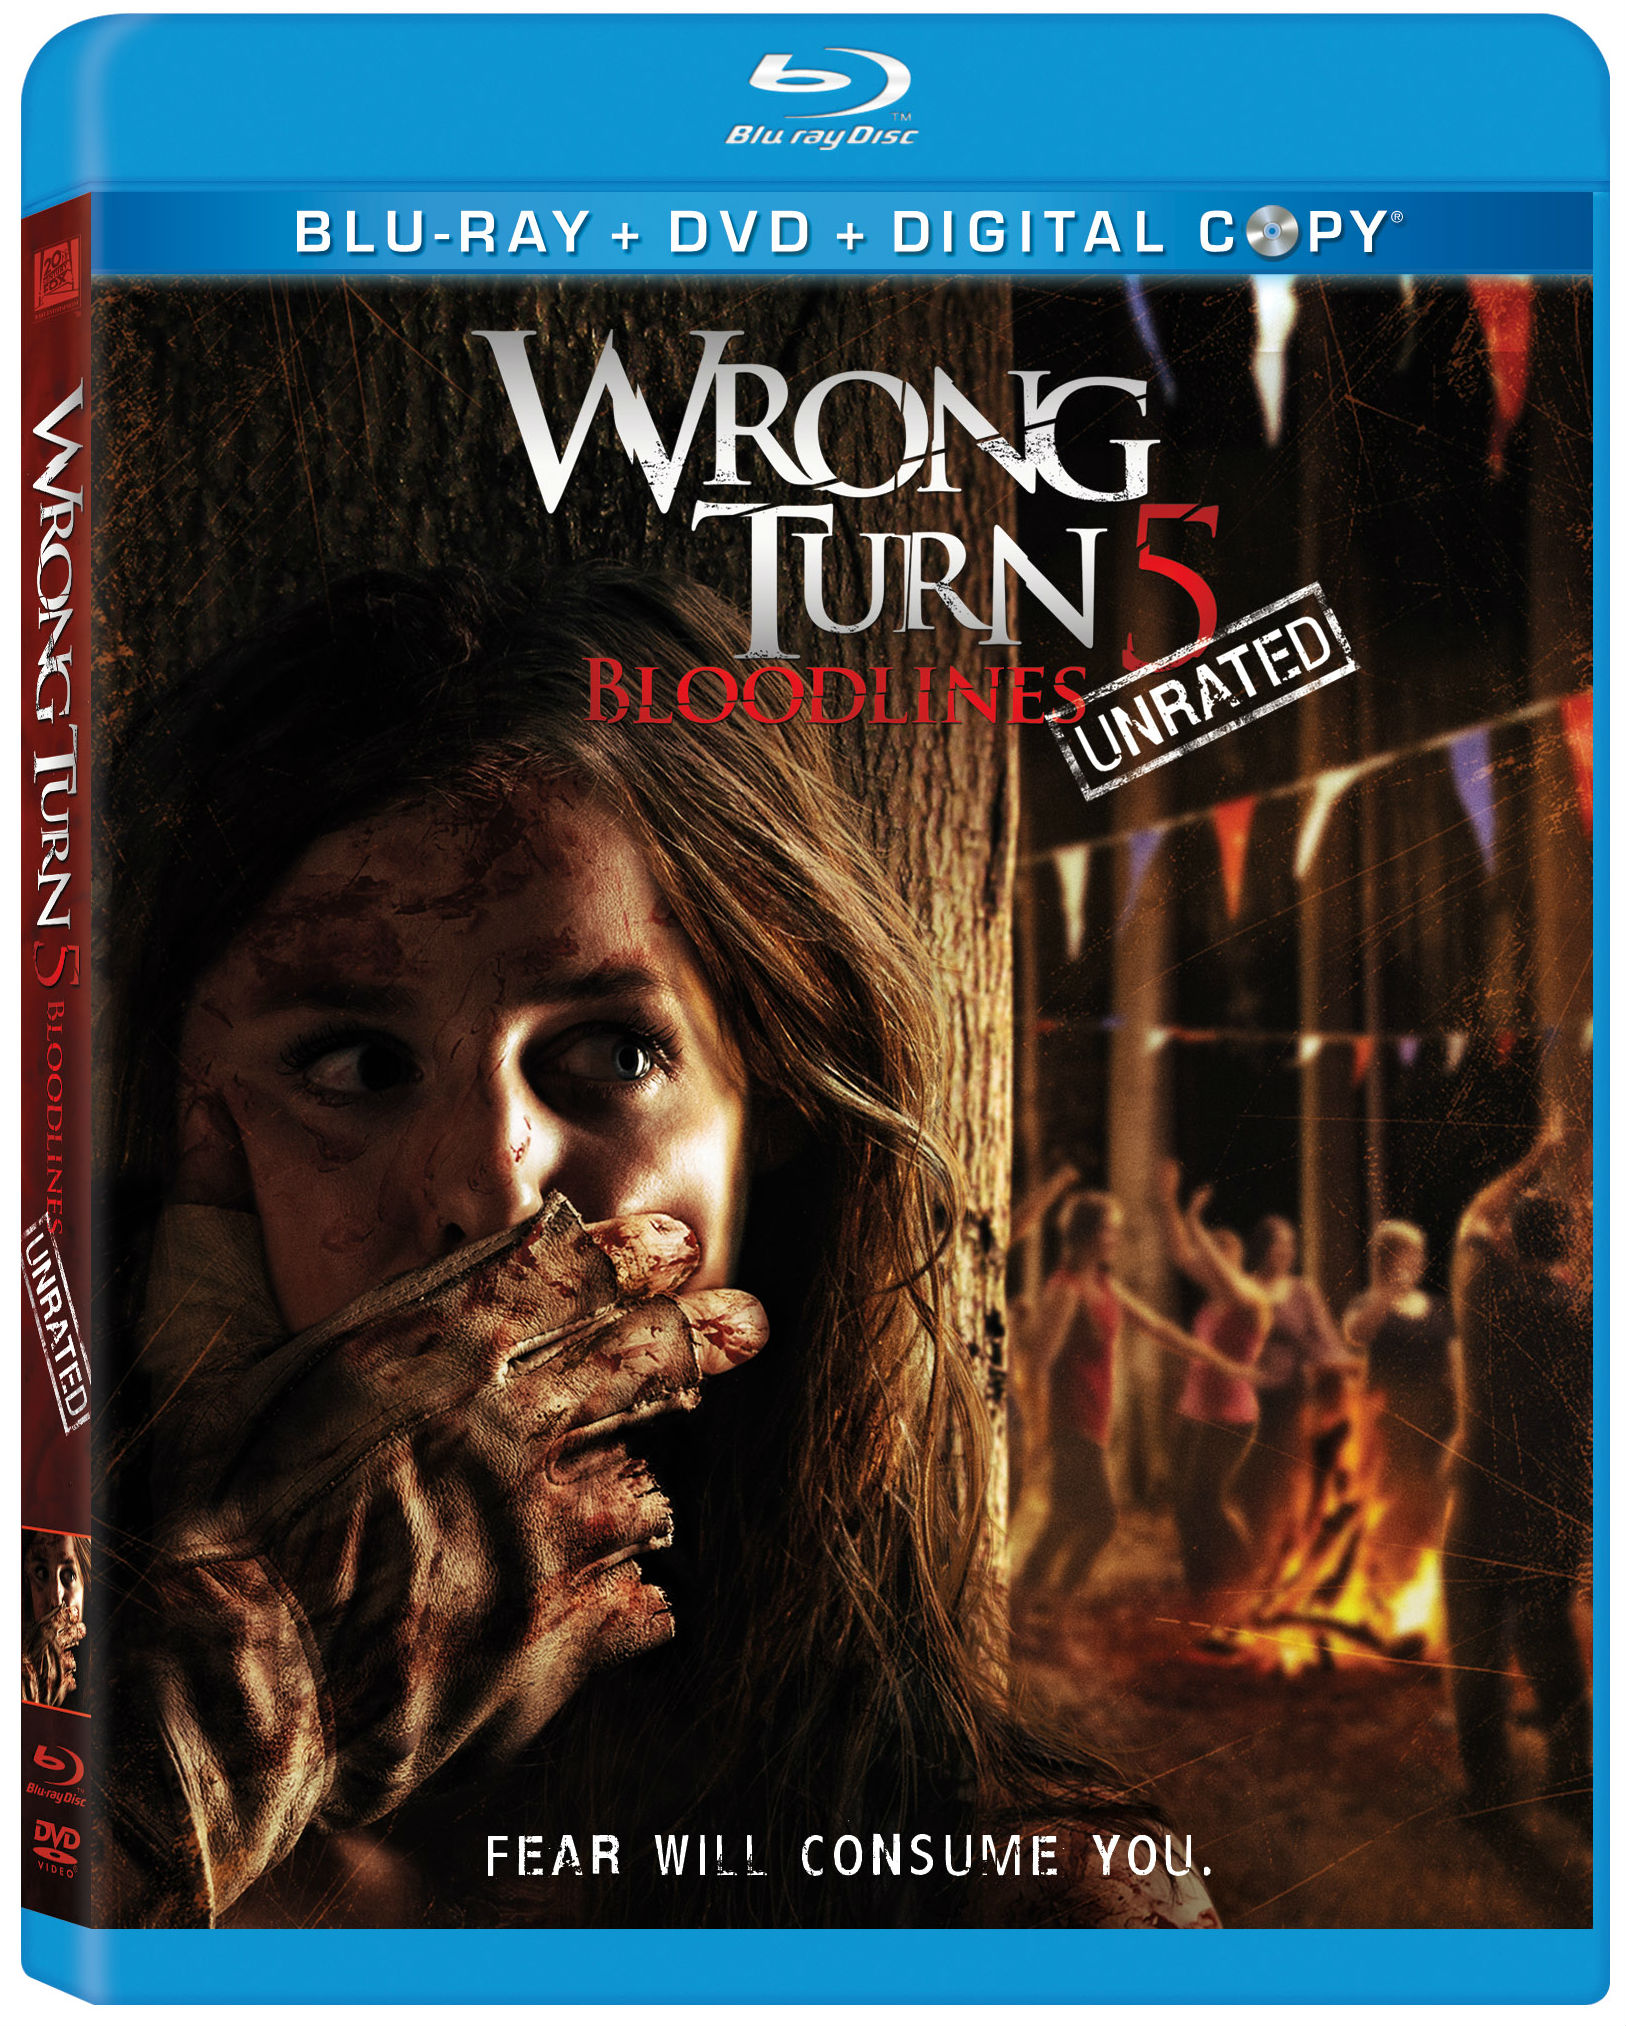 Wrong Turn 5 Tamil Dubbed Movie Free Download